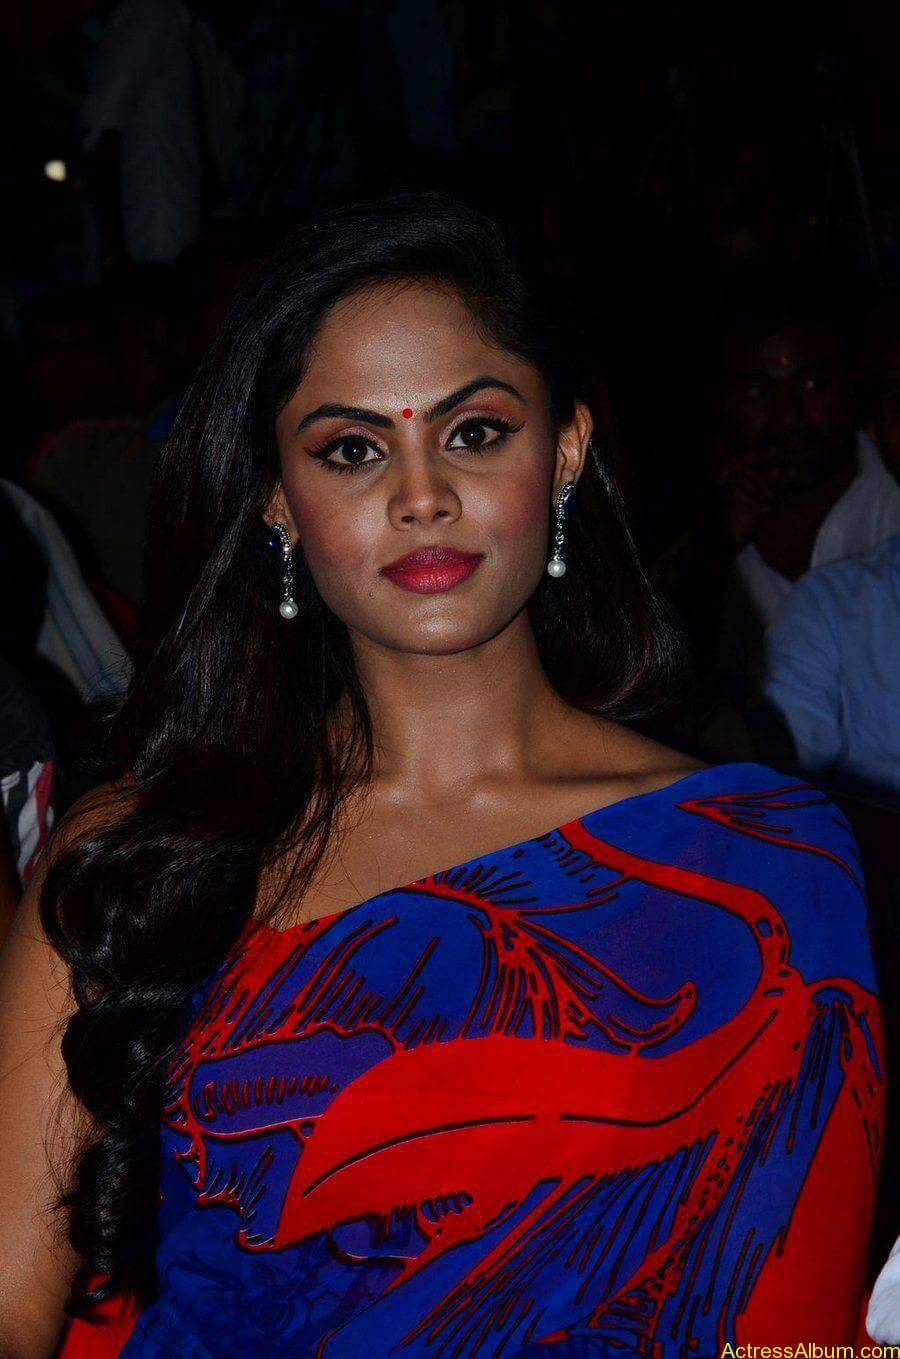 Tamil Actress Karthika Nair Hot in Blue Dress - 4